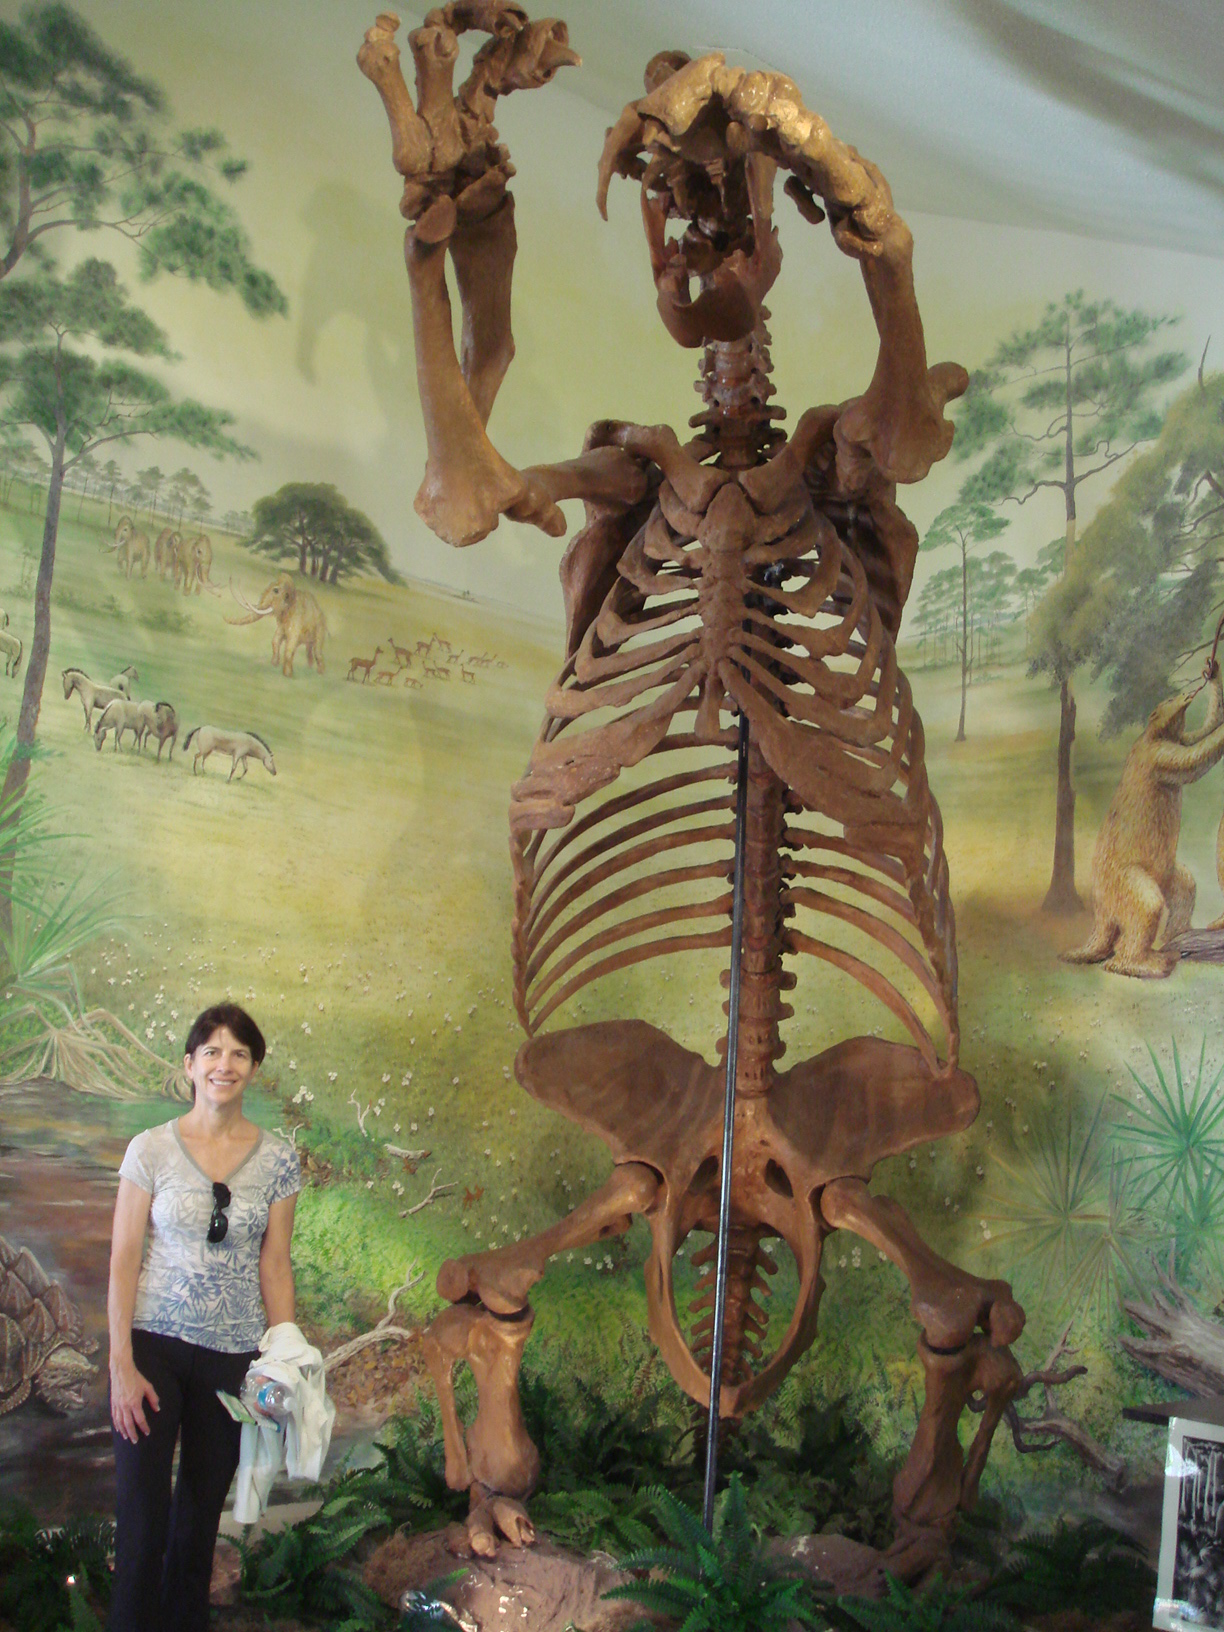 Places You Can't Visit - Giant Land Sloth